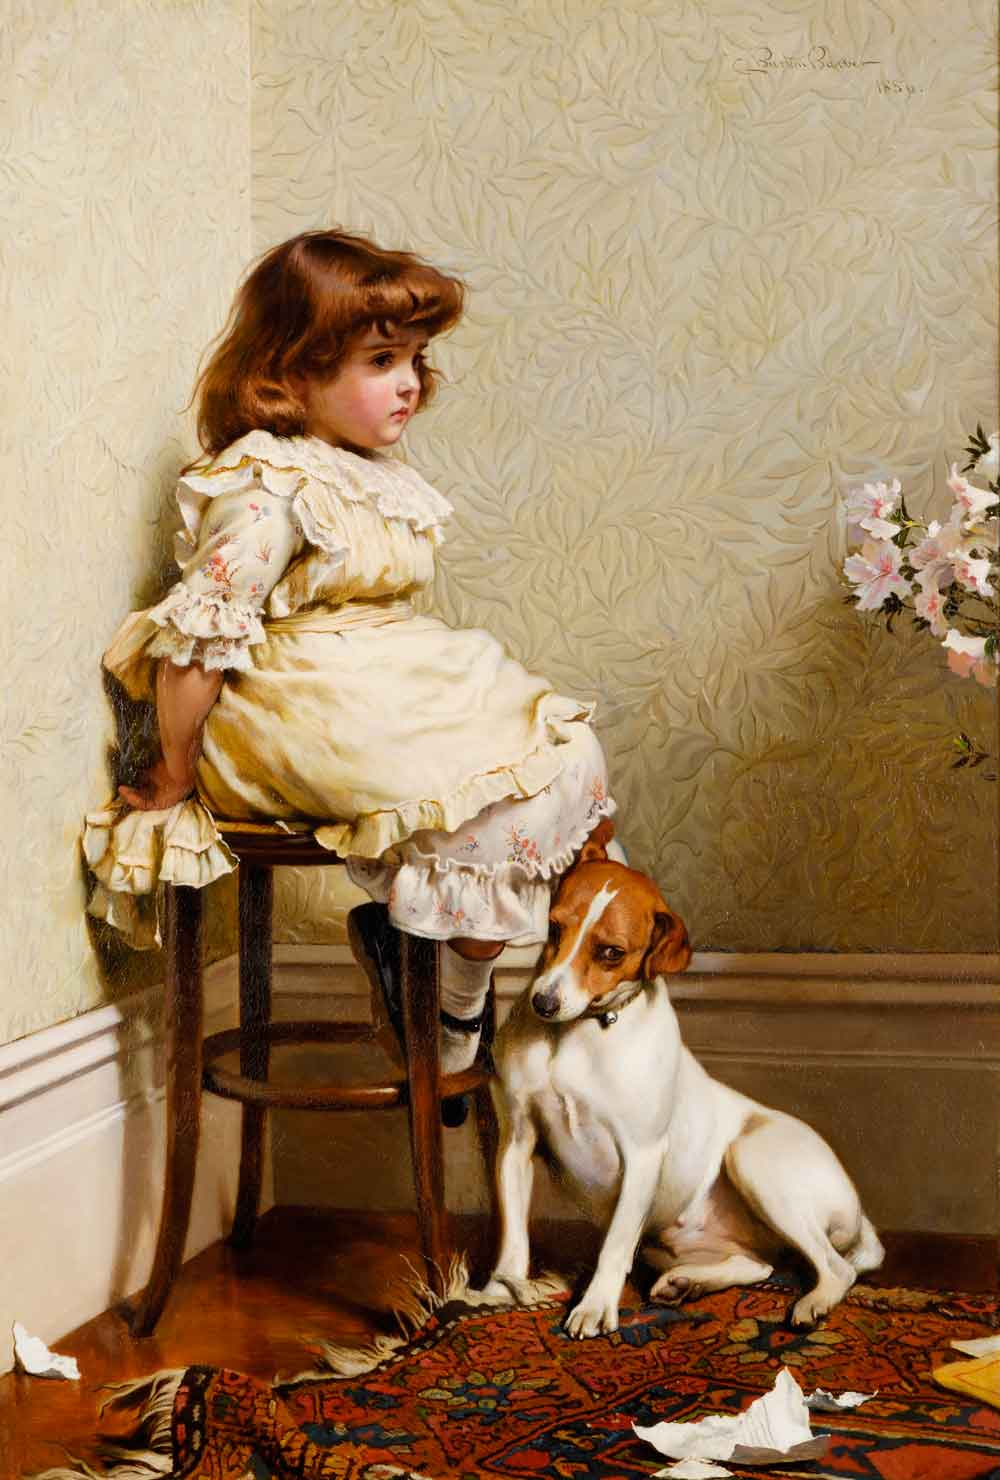 In Disgrace - 1886 - painted by Charles Burton Barber 1845-1894